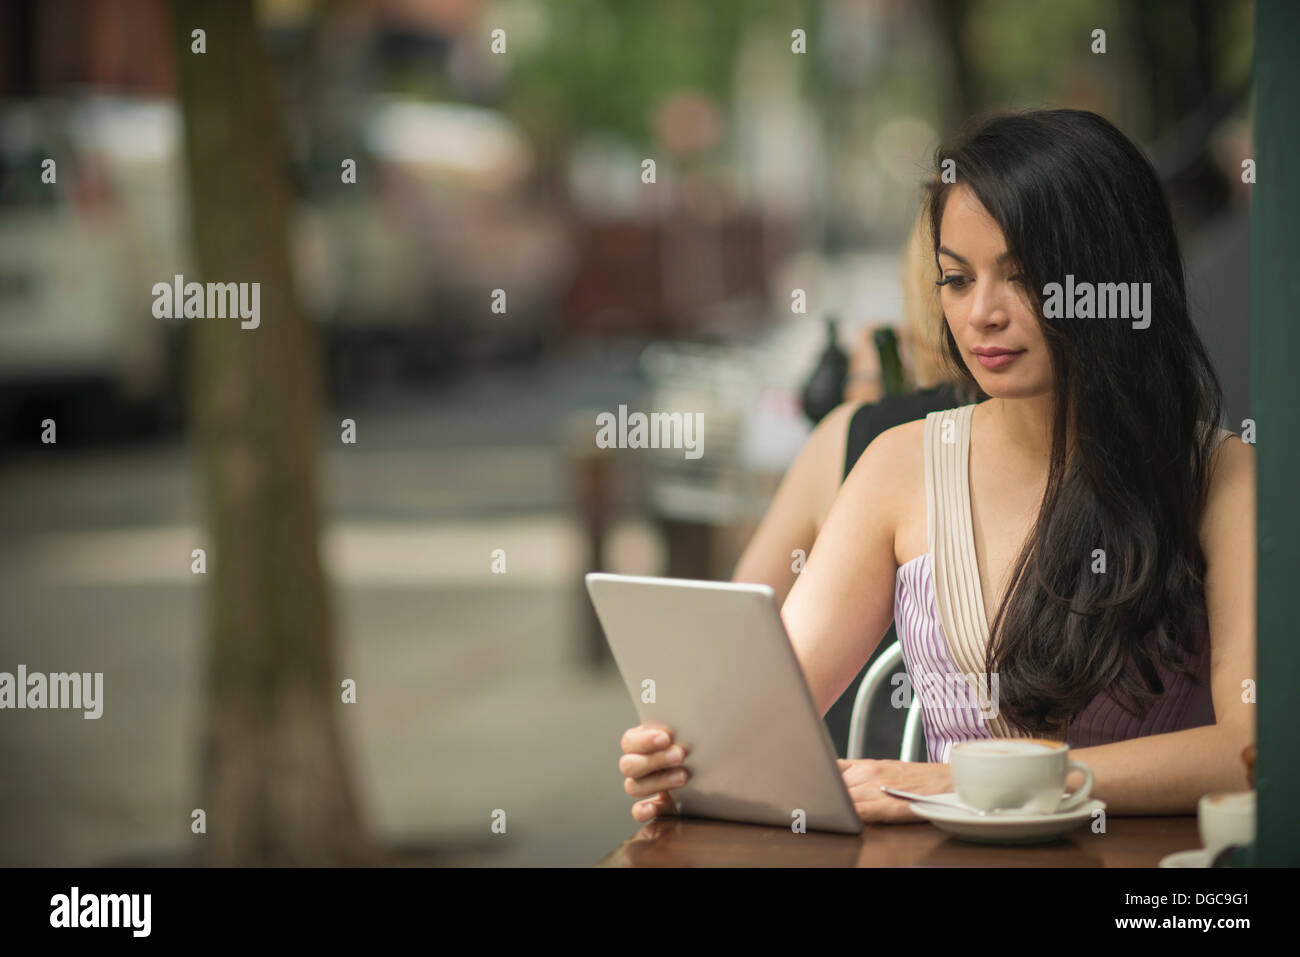 Mid adult women using digital tablet in pavement cafe - Stock Image